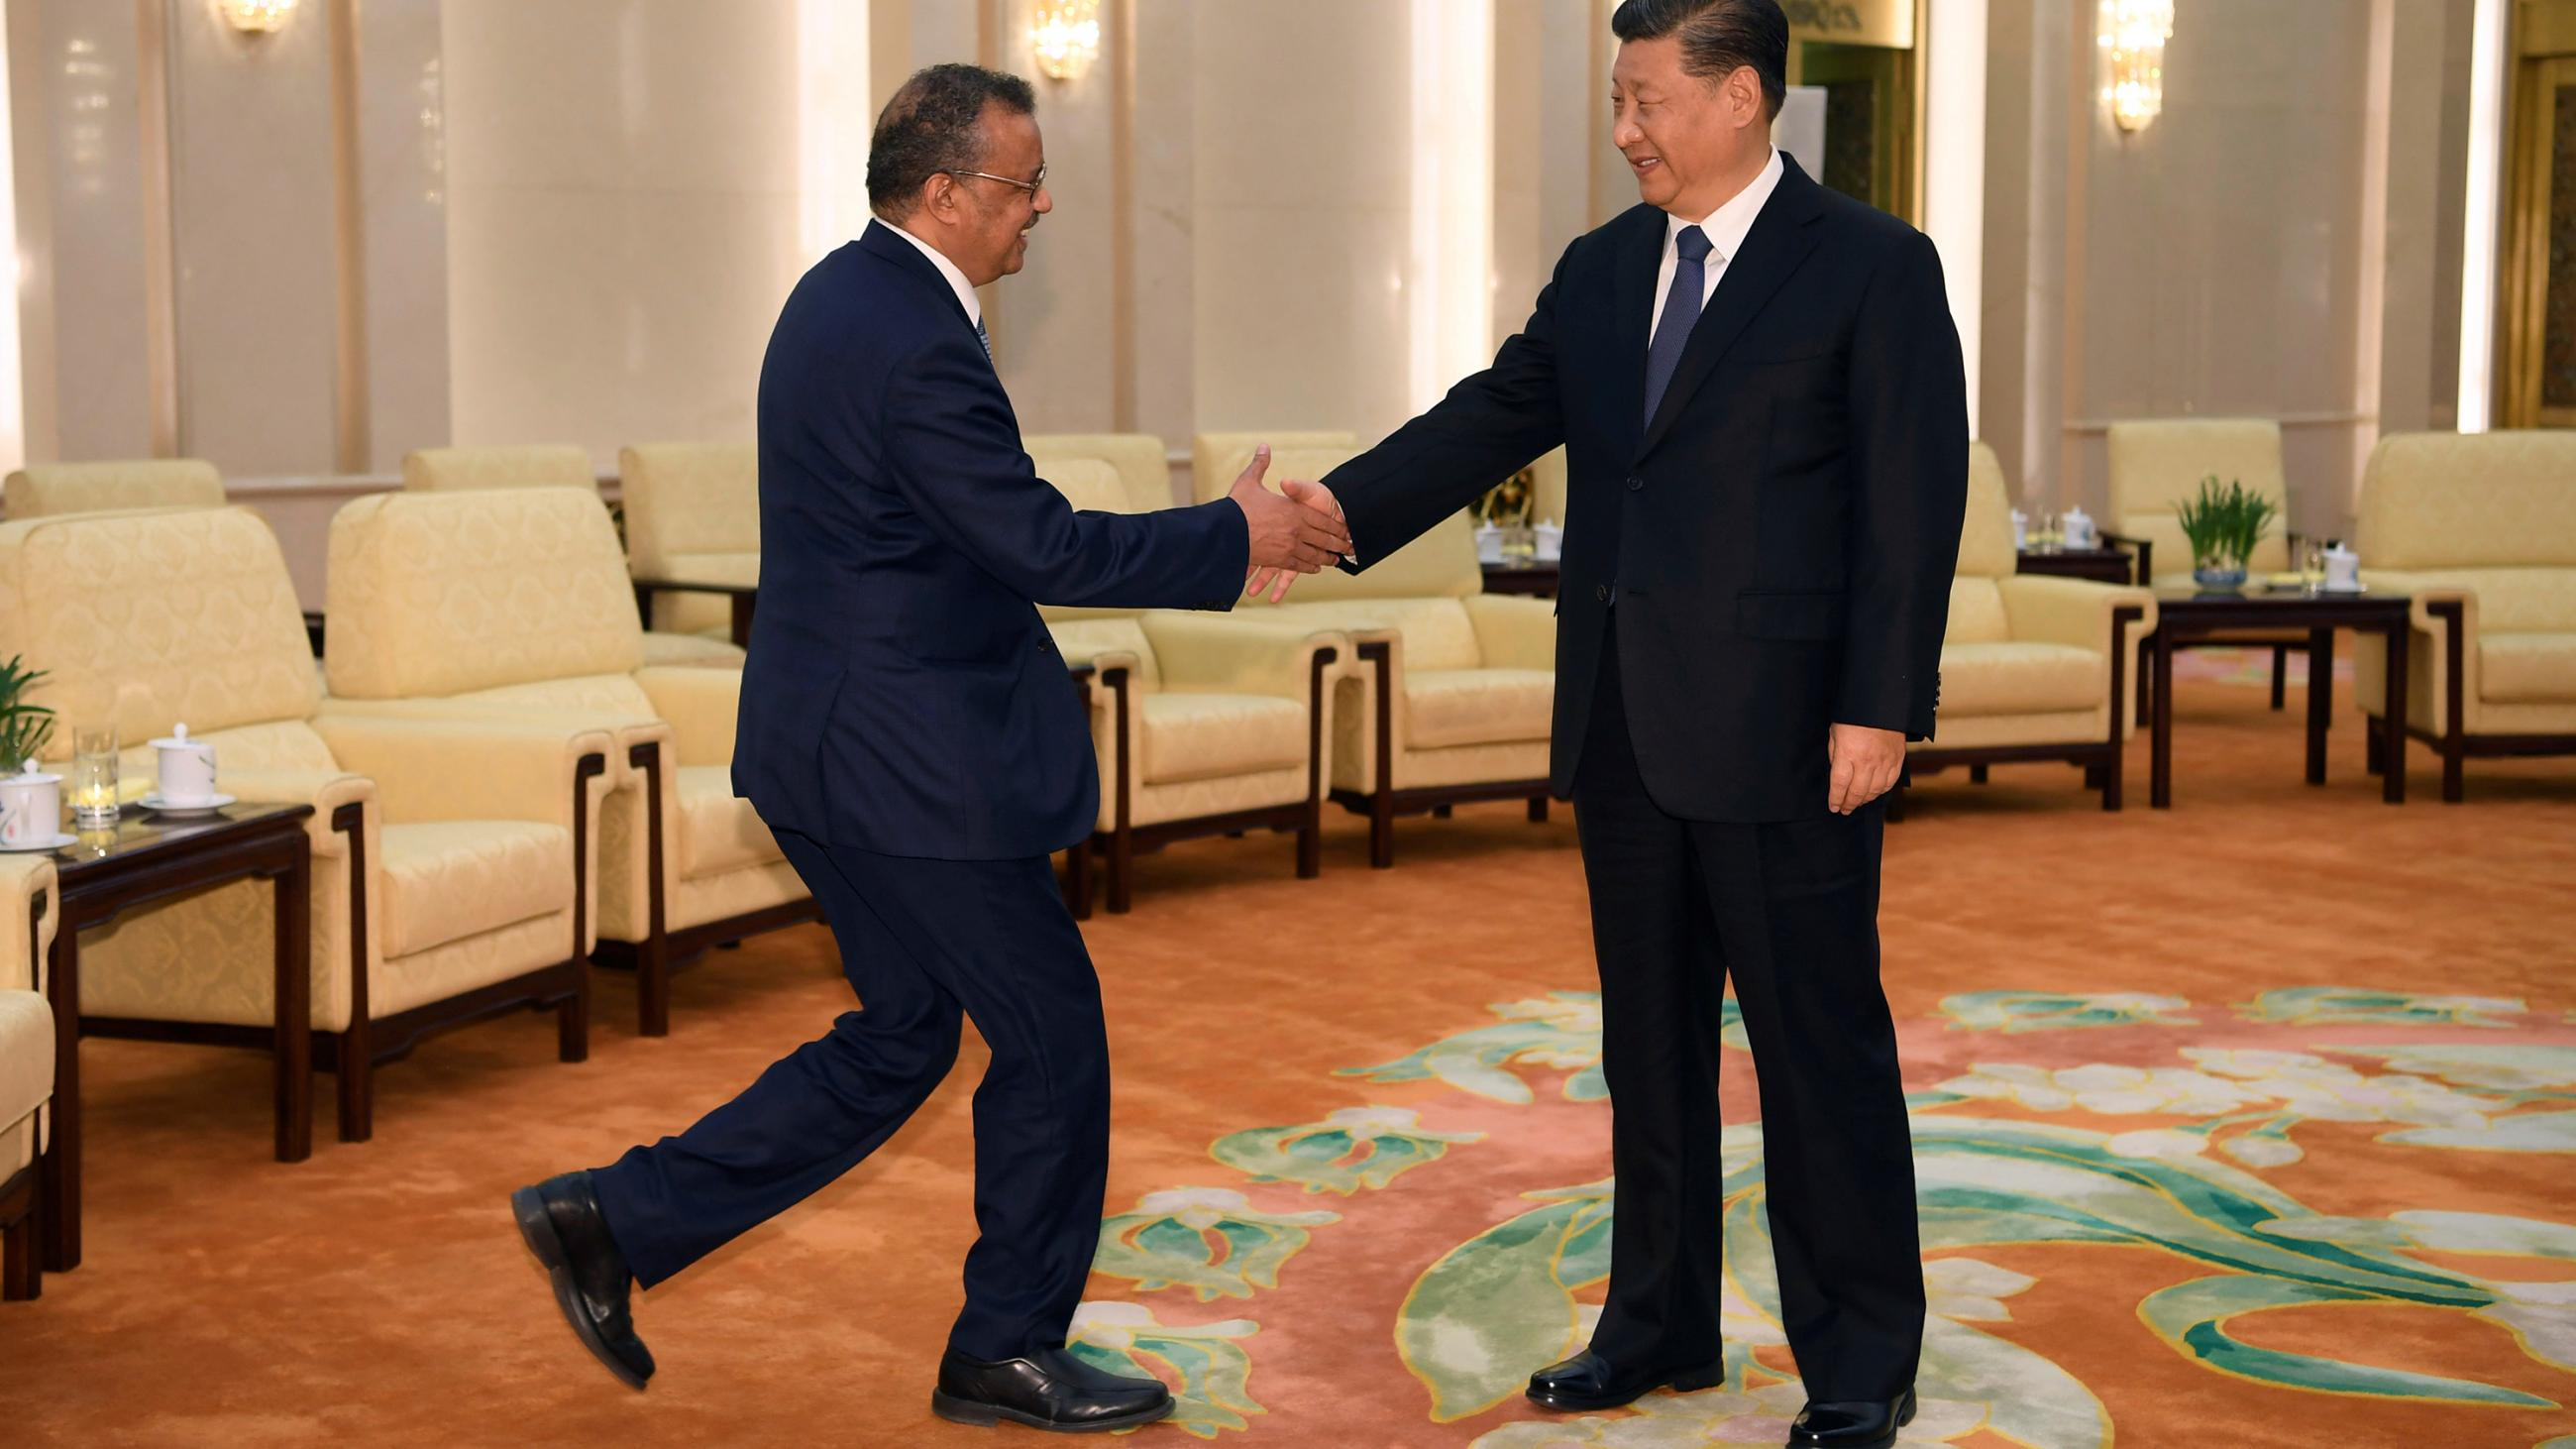 The photo shows the two leaders shaking hands and smiling.